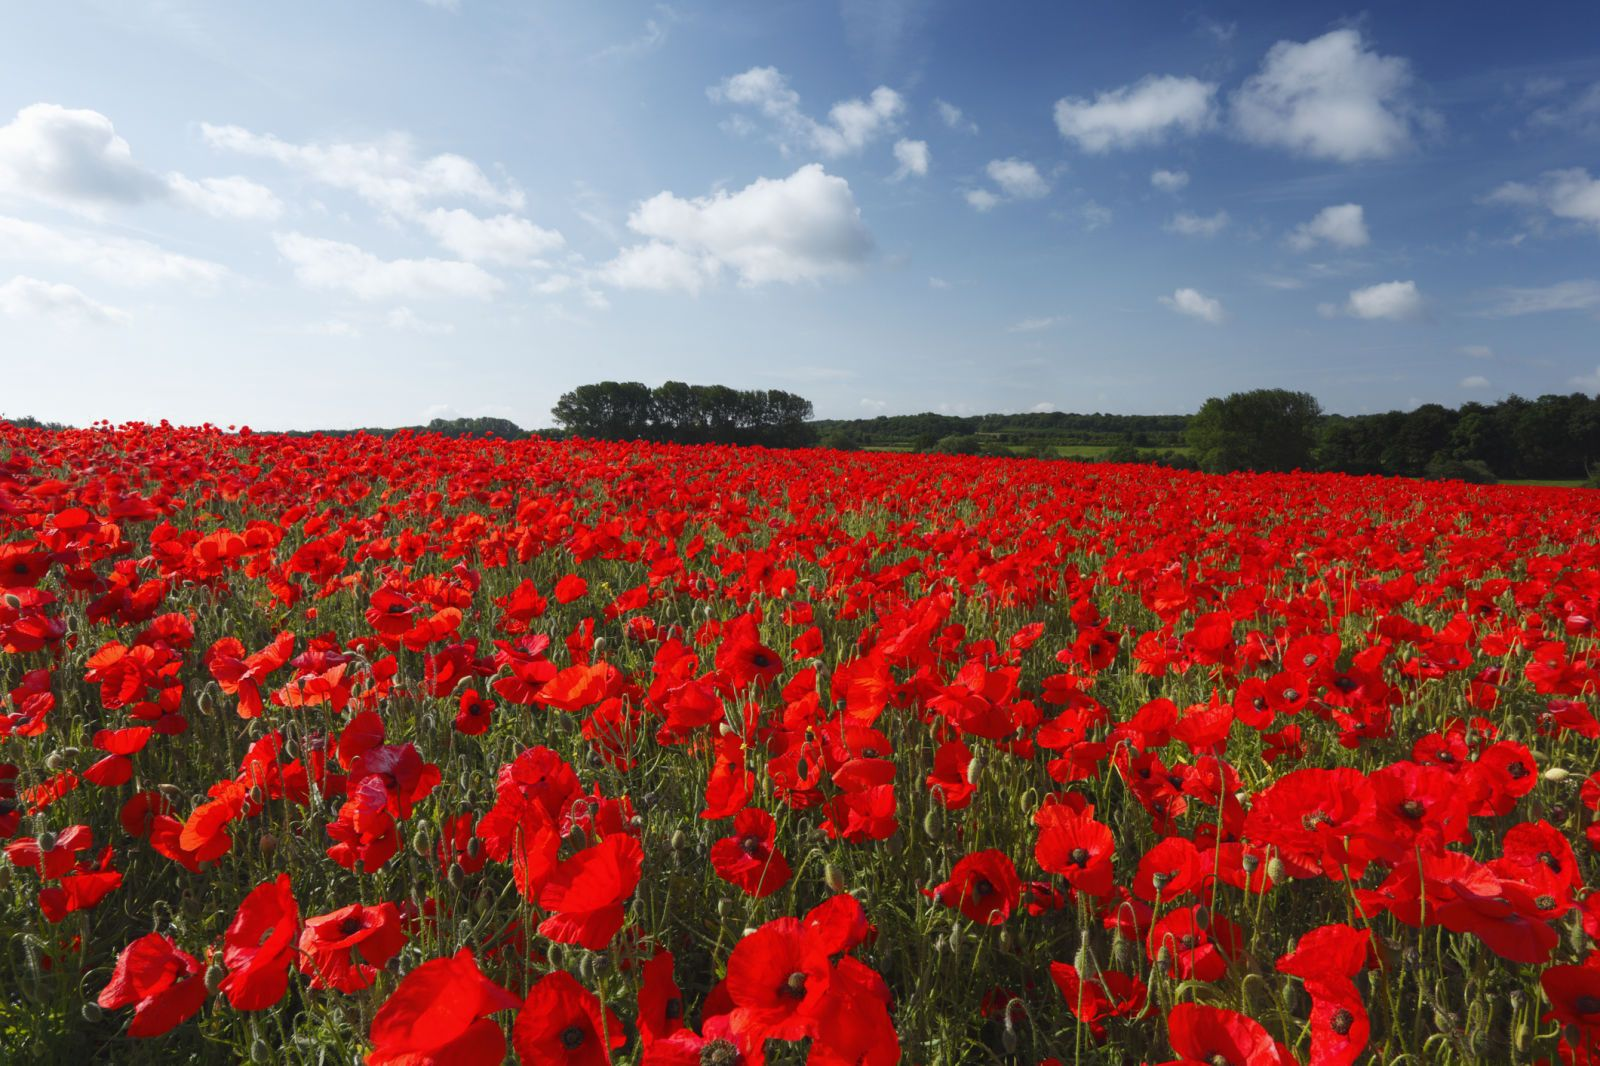 Everything you need to know about poppies flowers gardens and plants red poppies you know this one because of veterans day the red poppy represents remembrance mightylinksfo